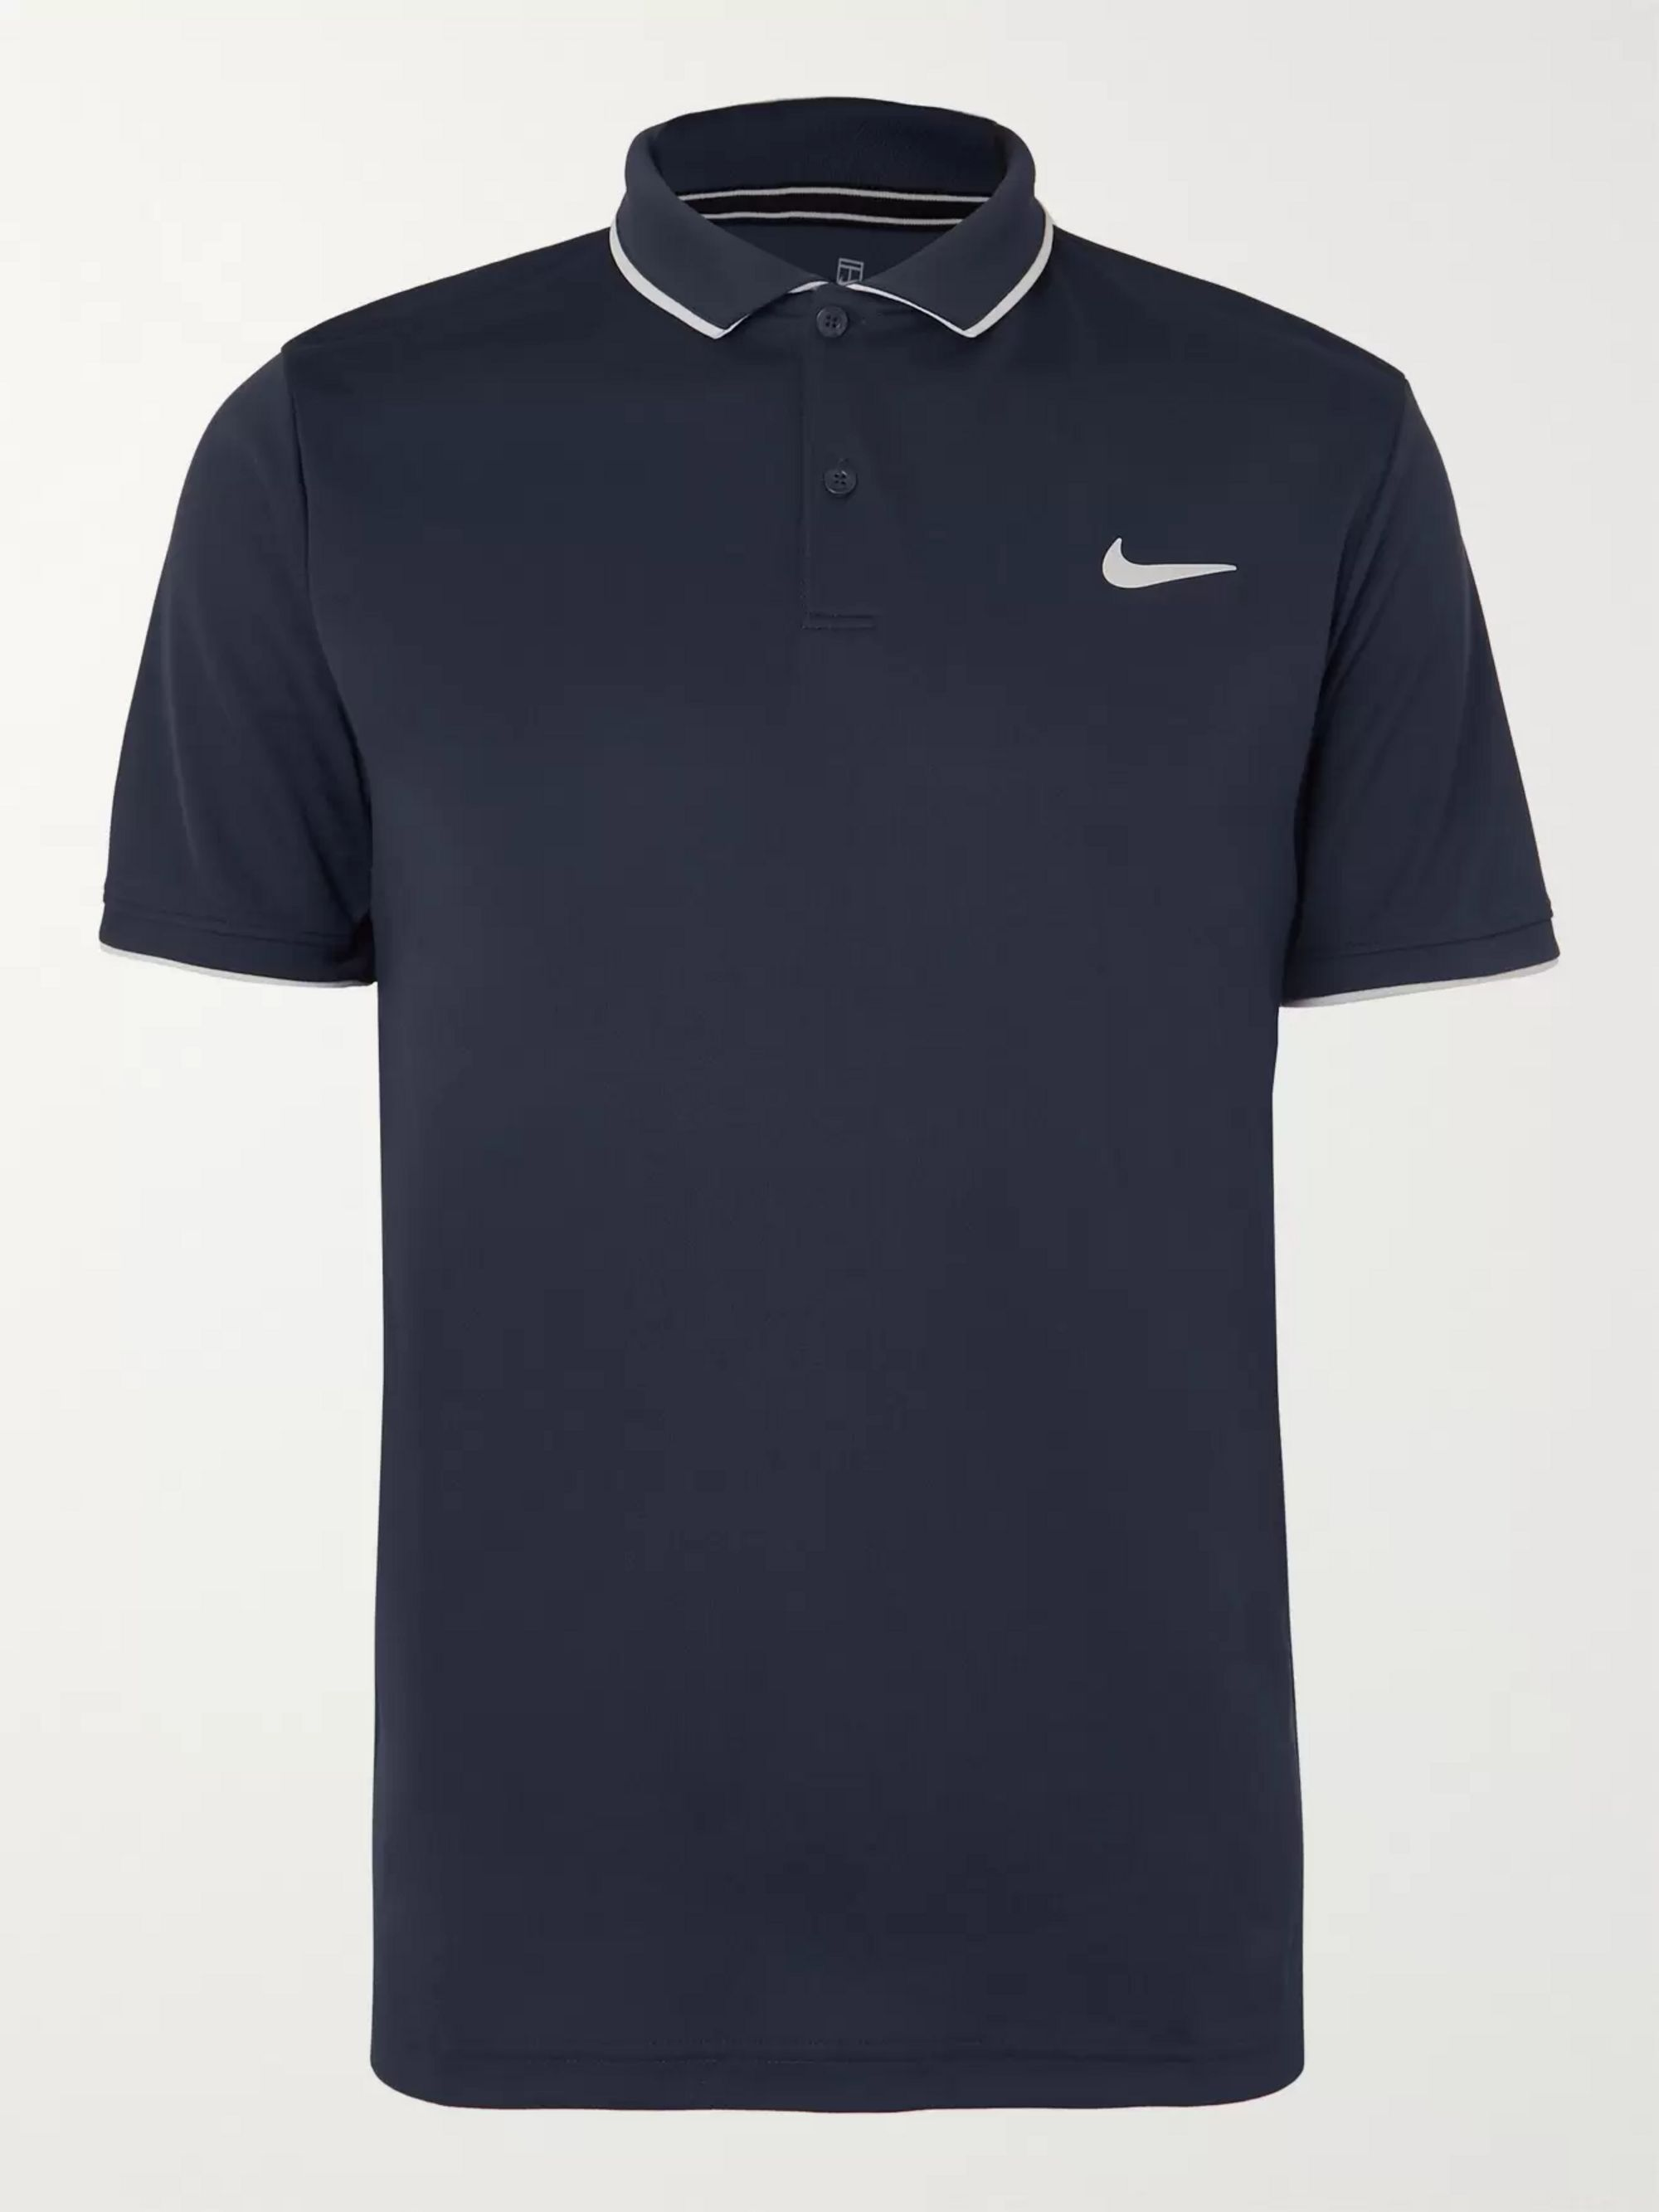 Nike Tennis NikeCourt Team Dri-FIT Tennis Polo Shirt